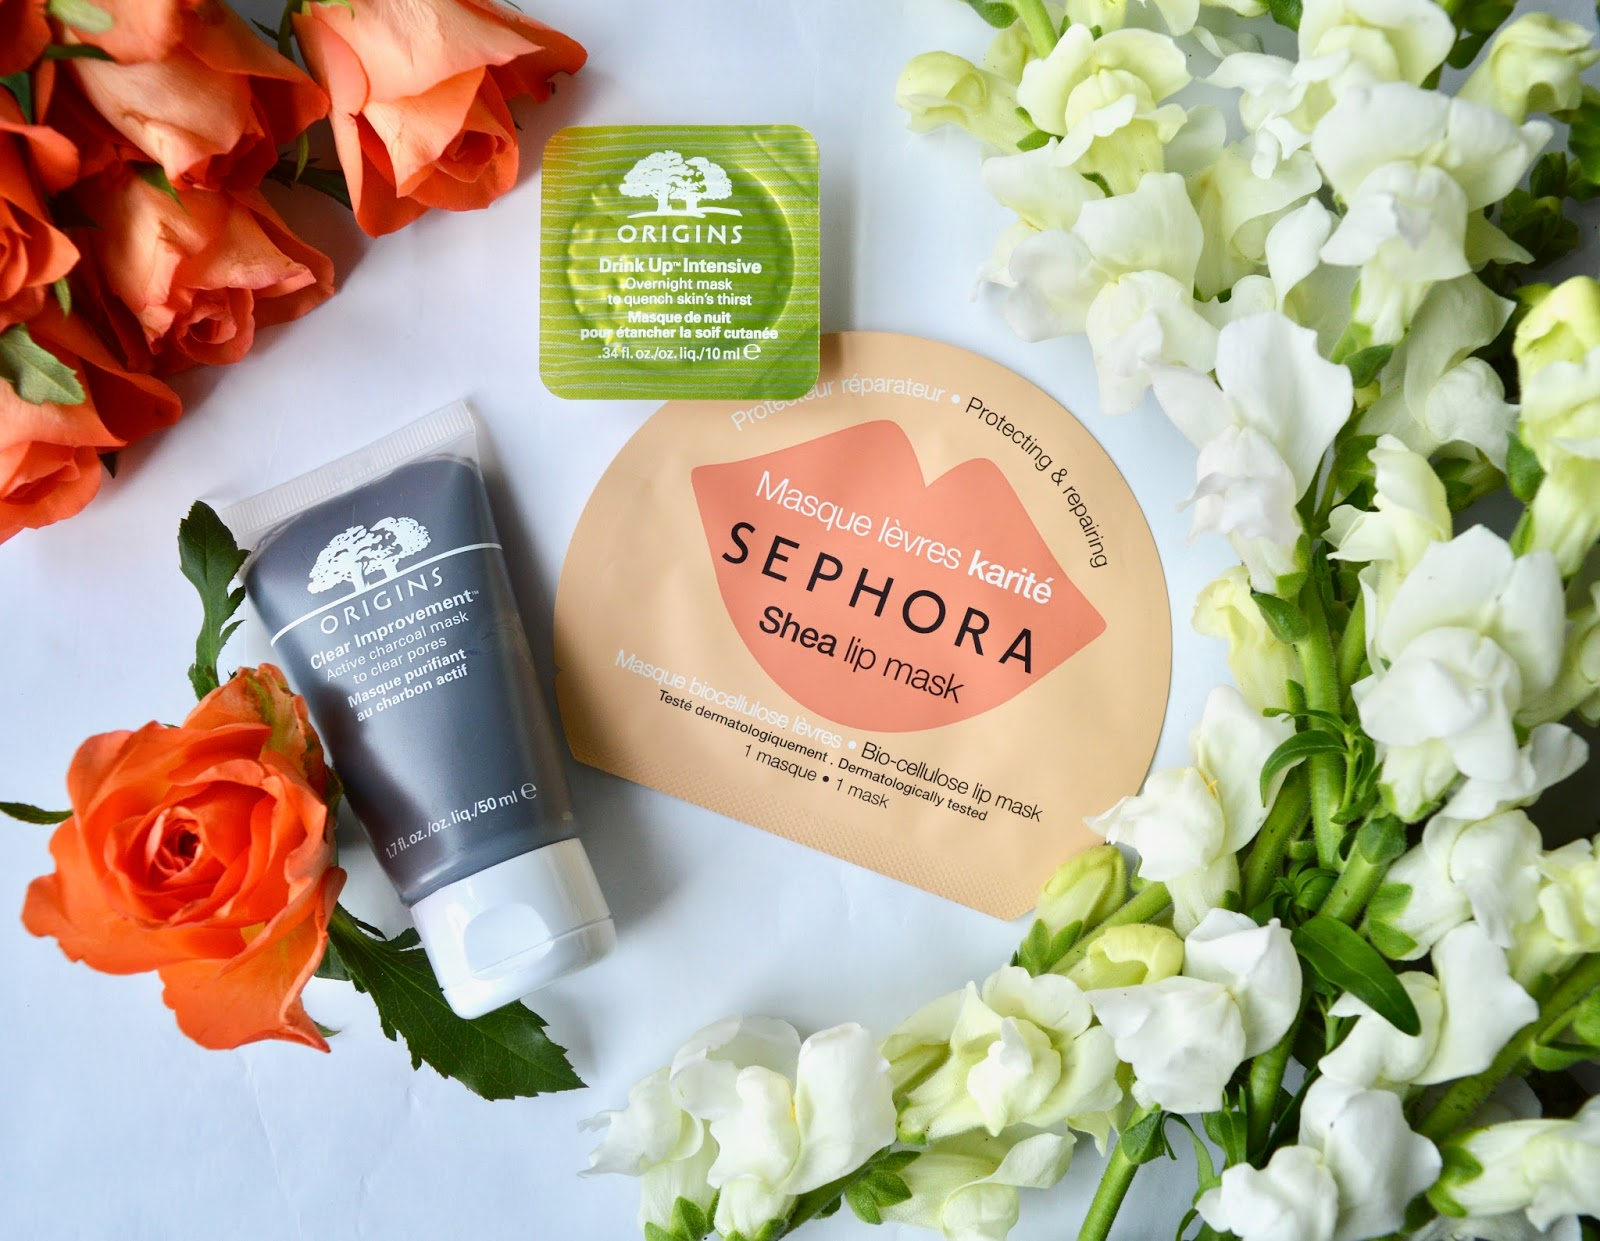 Face masks from Sephora